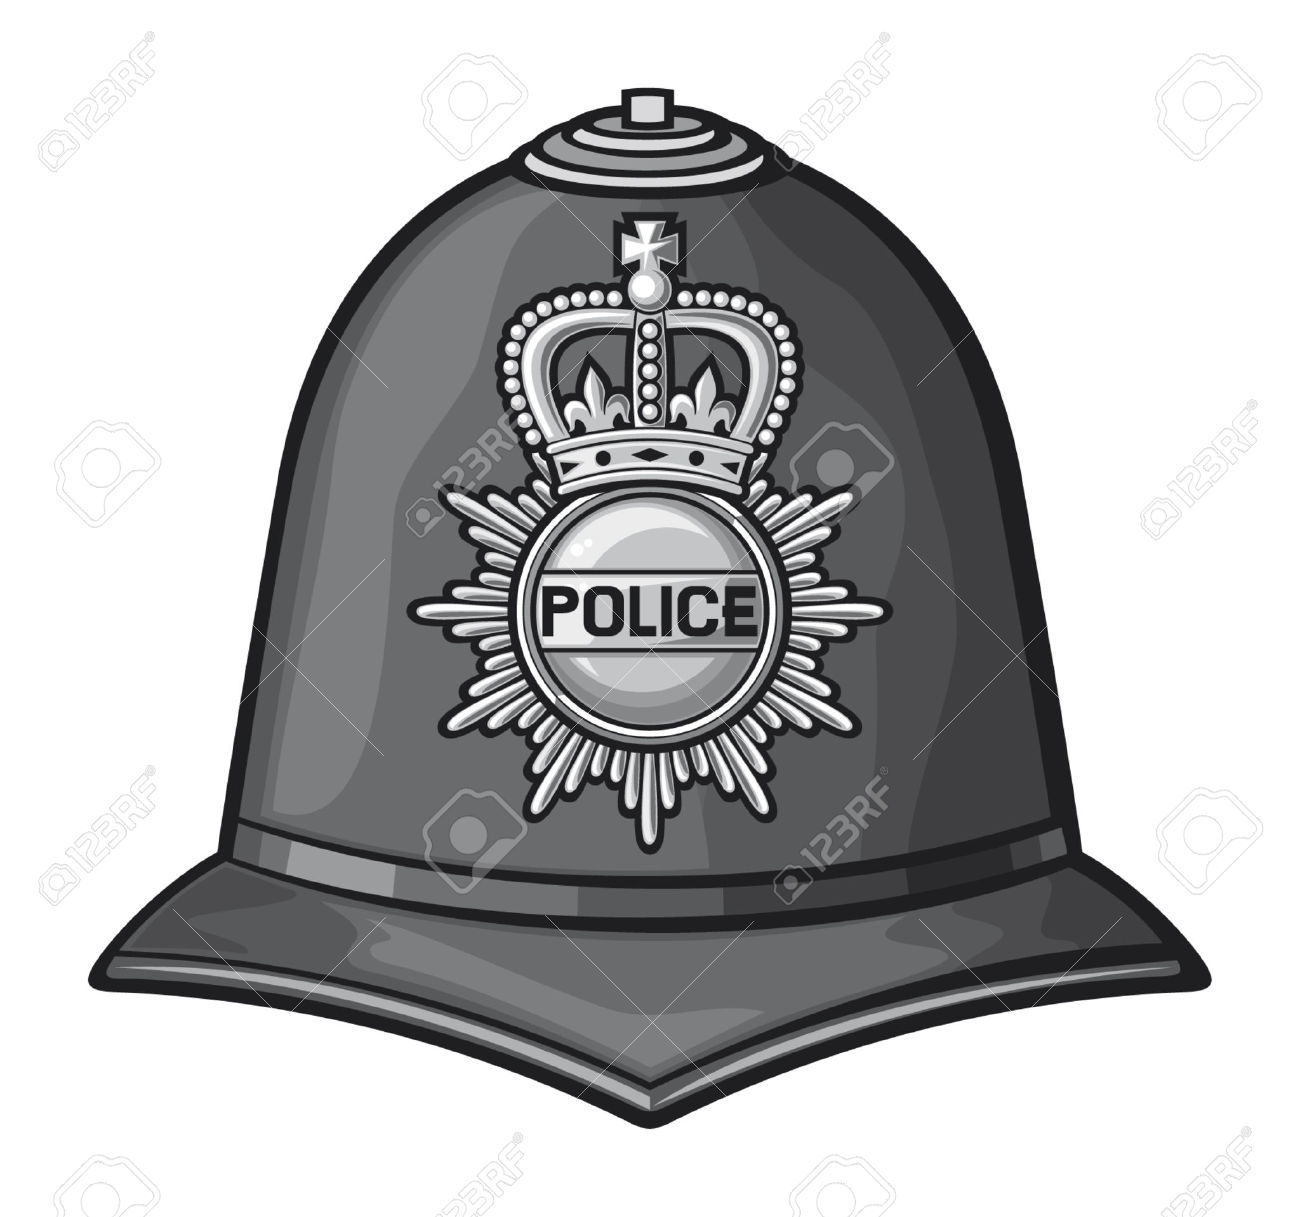 310 Uk Police Stock Illustrations, Cliparts And Royalty Free Uk ... image royalty free stock